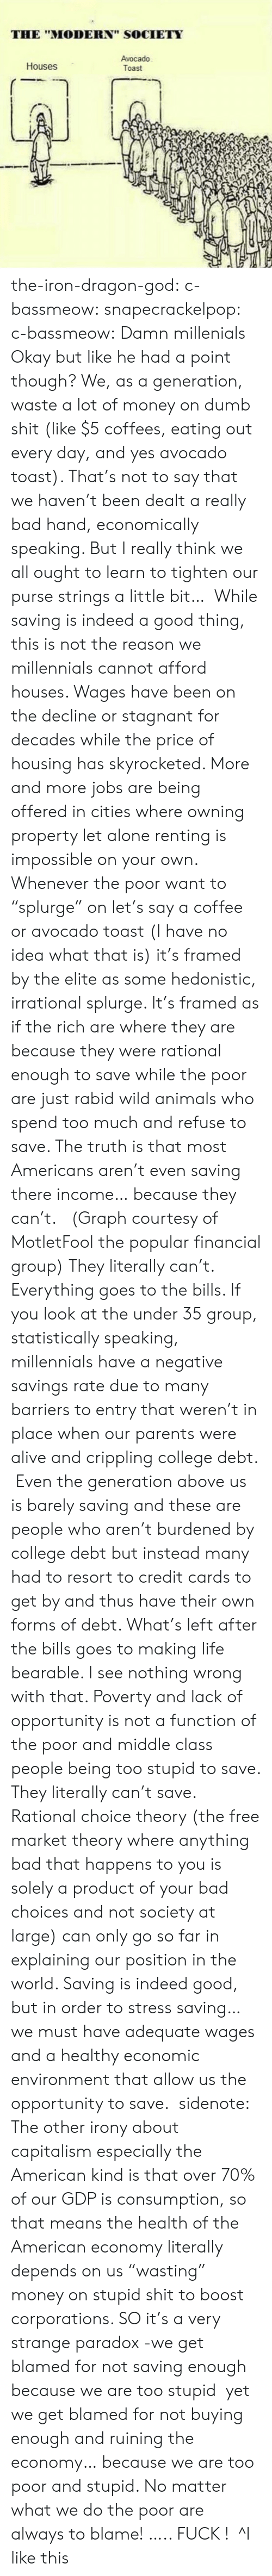 """I See Nothing: THE """"MODERN"""" SOCIETY  Avocado  Toast  Houses the-iron-dragon-god:  c-bassmeow:  snapecrackelpop:  c-bassmeow: Damn millenials Okay but like he had a point though? We, as a generation, waste a lot of money on dumb shit (like $5 coffees, eating out every day, and yes avocado toast). That's not to say that we haven't been dealt a really bad hand, economically speaking. But I really think we all ought to learn to tighten our purse strings a little bit…  While saving is indeed a good thing, this is not the reason we millennials cannot afford houses. Wages have been on the decline or stagnant for decades while the price of housing has skyrocketed. More and more jobs are being offered in cities where owning property let alone renting is  impossible on your own. Whenever the poor want to """"splurge"""" on let's say a coffee or avocado toast (I have no idea what that is) it's framed by the elite as some hedonistic, irrational splurge. It's framed as if the rich are where they are because they were rational enough to save while the poor are just rabid wild animals who spend too much and refuse to save. The truth is that most Americans aren't even saving there income… because they can't. (Graph courtesy of MotletFool the popular financial group) They literally can't. Everything goes to the bills. If you look at the under 35 group, statistically speaking, millennials have a negative savings rate due to many barriers to entry that weren't in place when our parents were alive and crippling college debt. Even the generation above us is barely saving and these are people who aren't burdened by college debt but instead many had to resort to credit cards to get by and thus have their own forms of debt. What's left after the bills goes to making life bearable. I see nothing wrong with that. Poverty and lack of opportunity is not a function of the poor and middle class people being too stupid to save. They literally can't save. Rational choice theory (the free market theory w"""